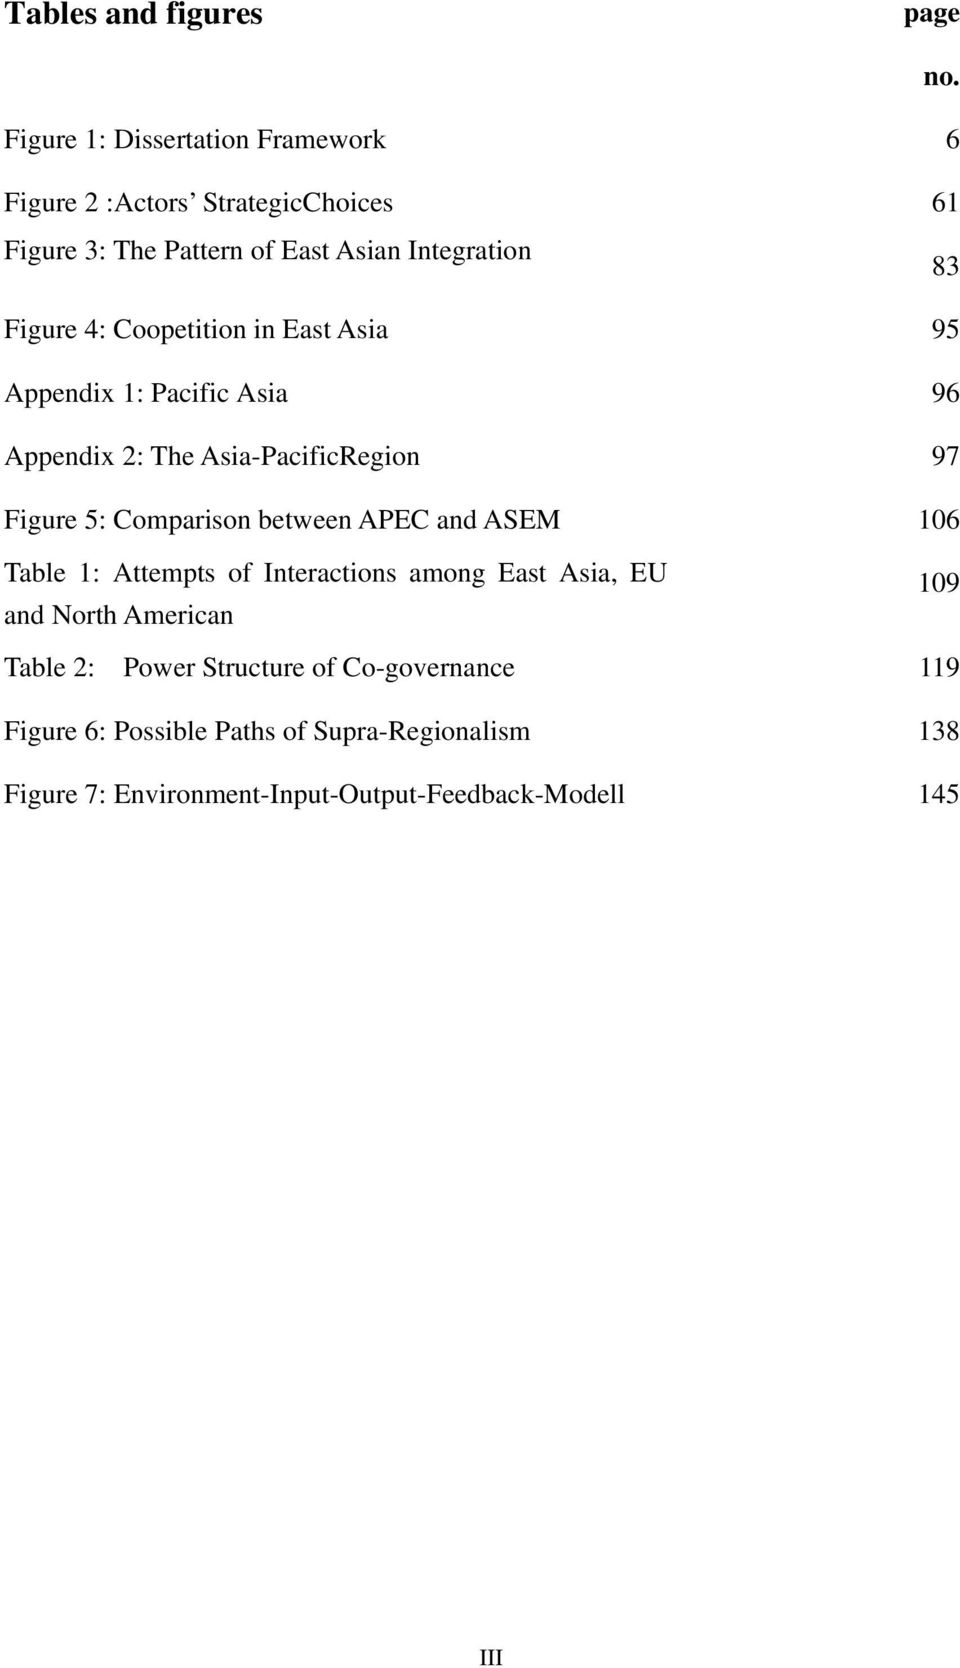 Asia-PacificRegion 97 Figure 5: Comparison between APEC and ASEM 106 Table 1: Attempts of Interactions among East Asia, EU and North